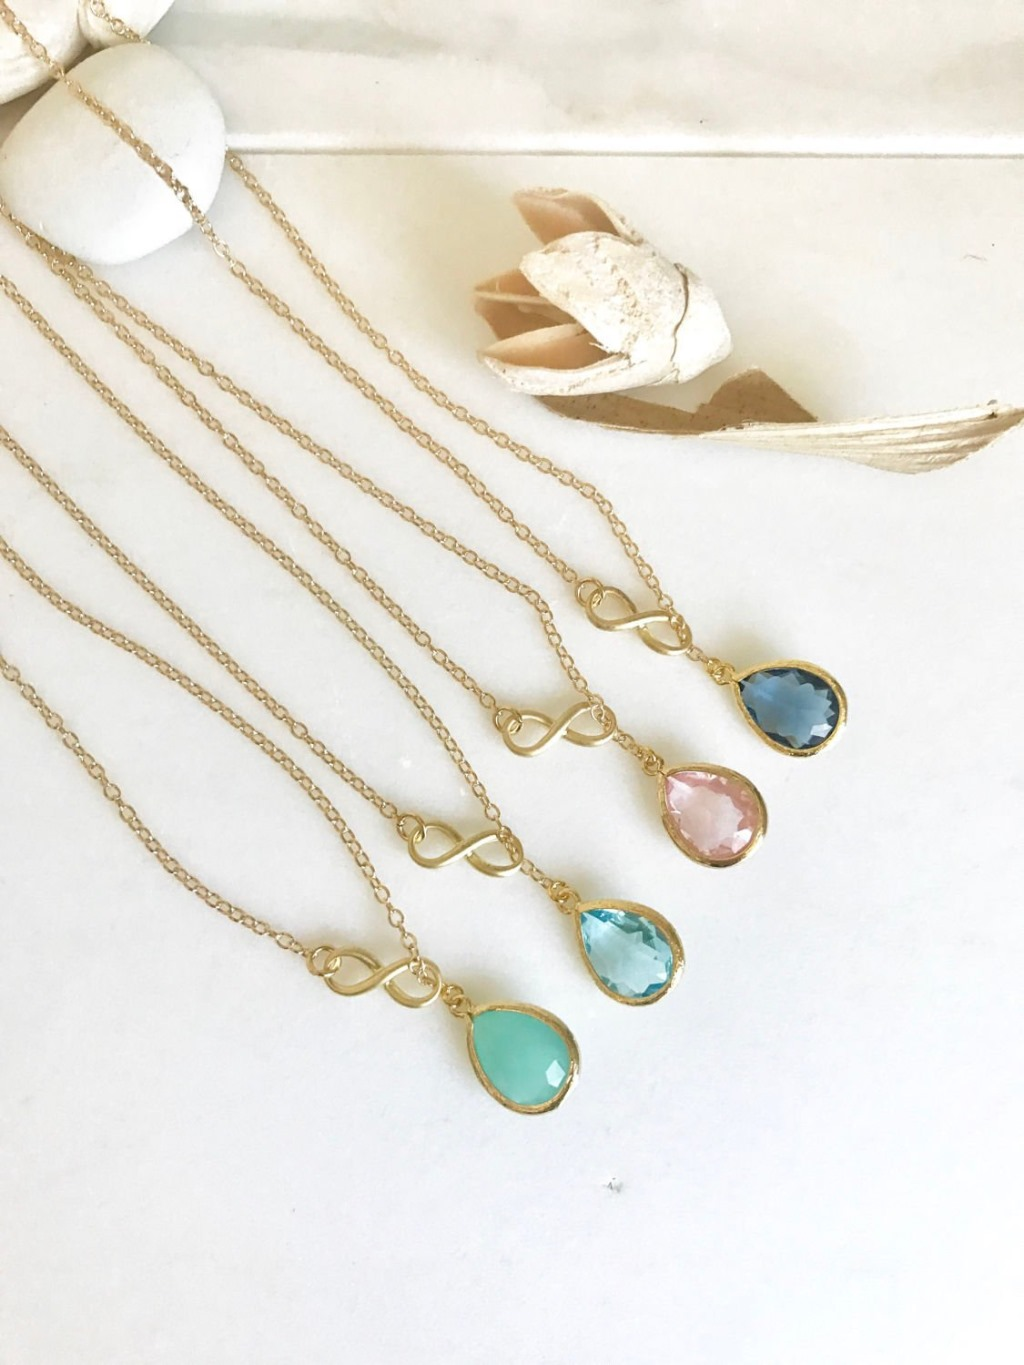 The teardrop pictured measure about 11mm x 17mm. Necklaces are made 17